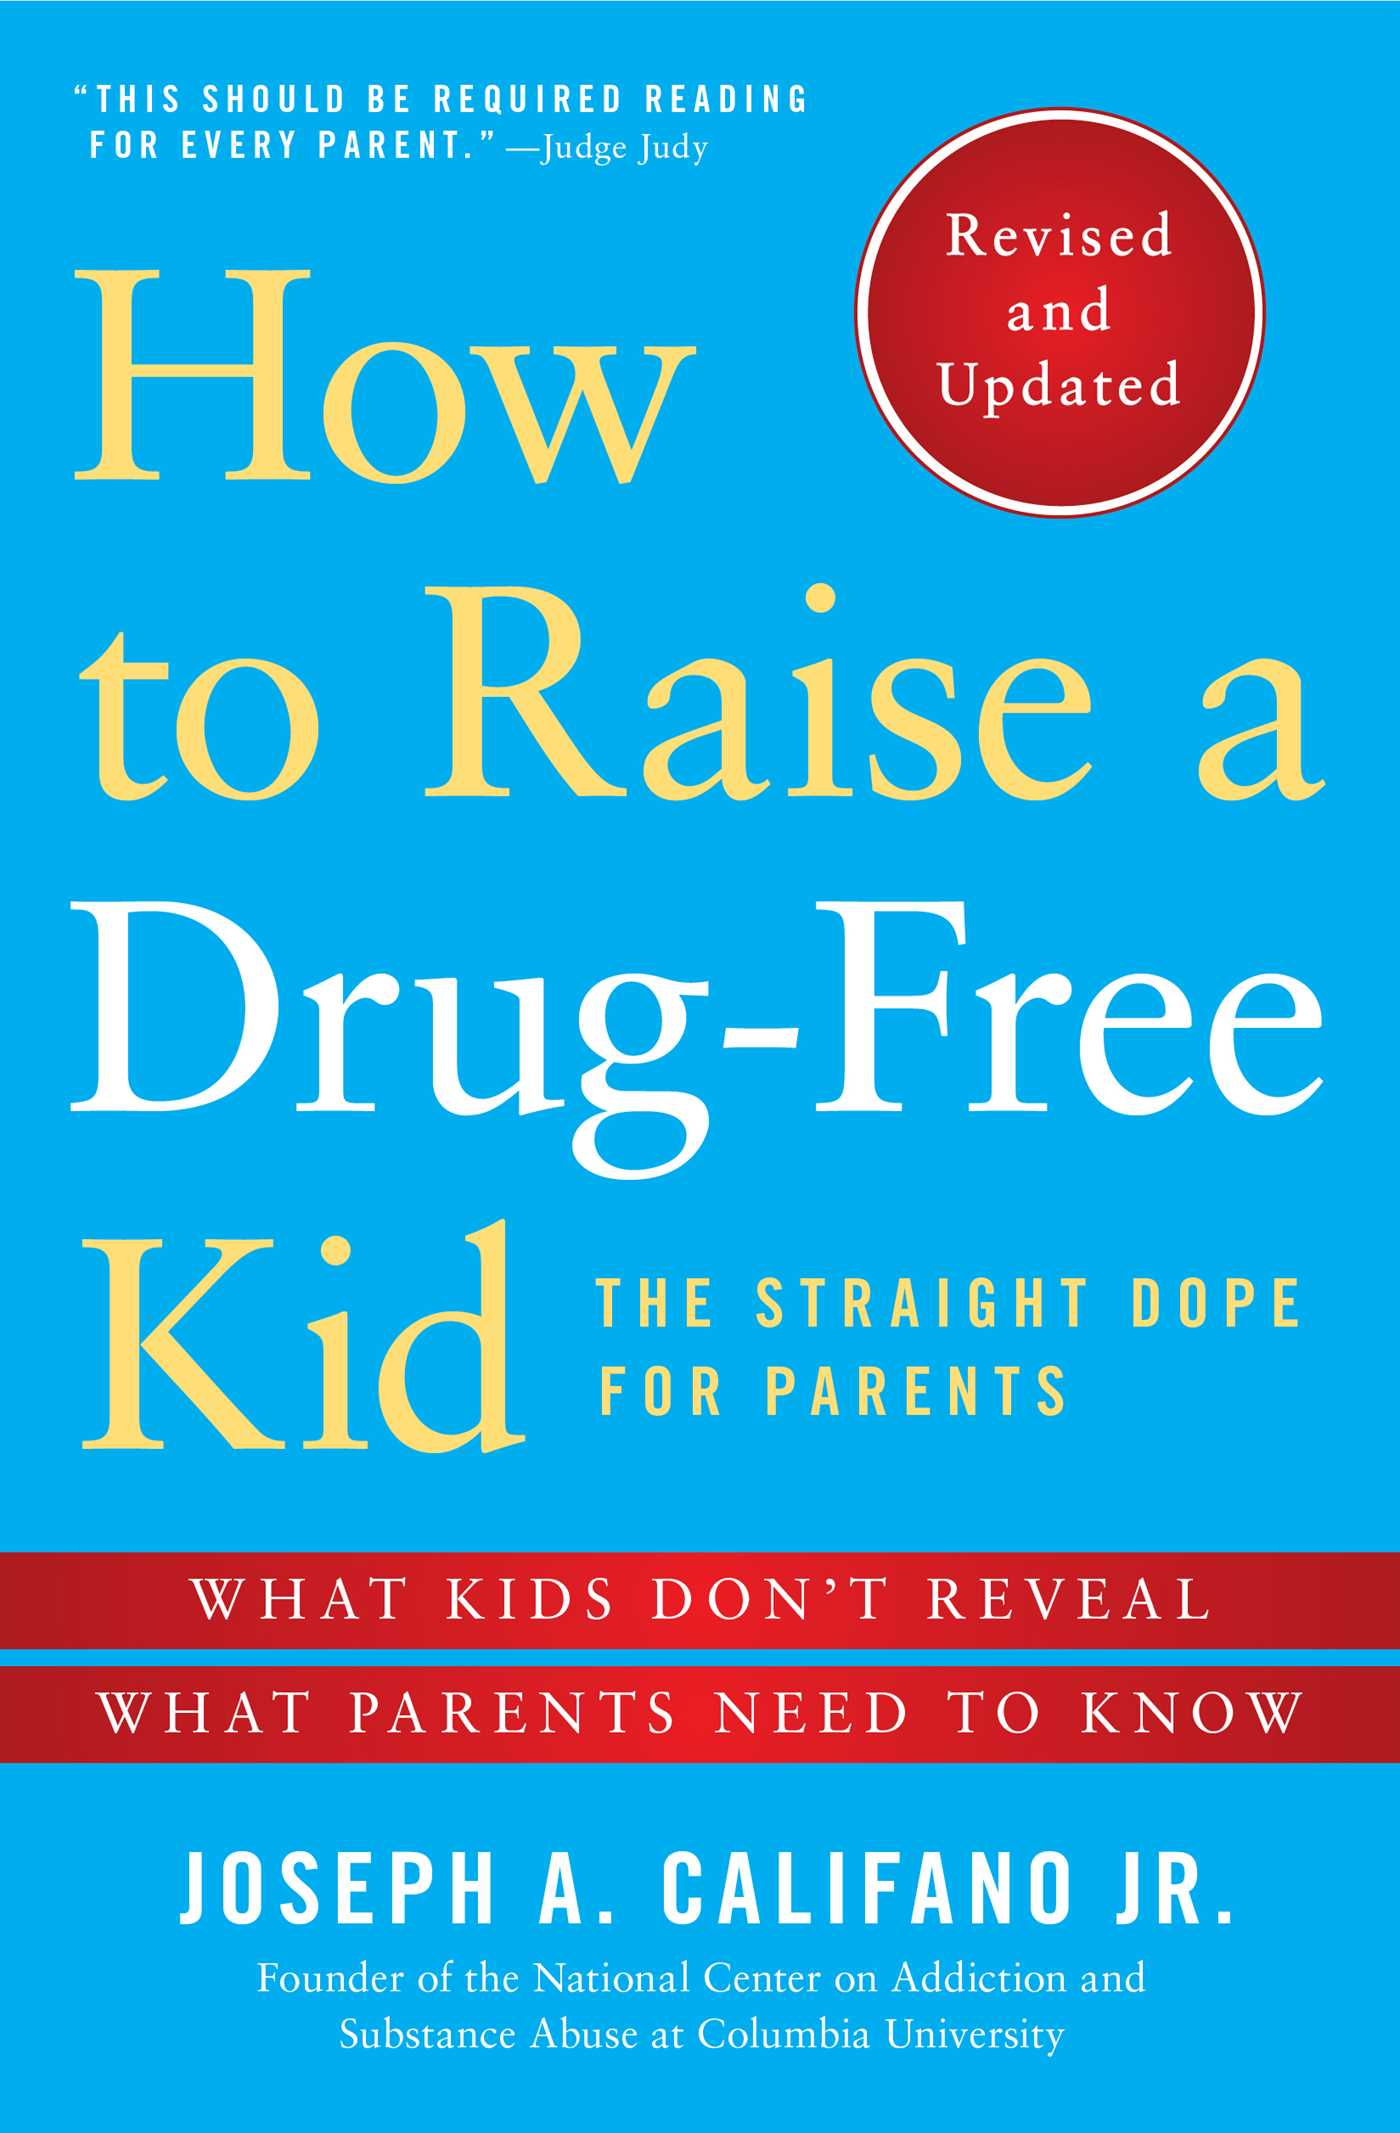 How-to-raise-a-drug-free-kid-9781476728490_hr